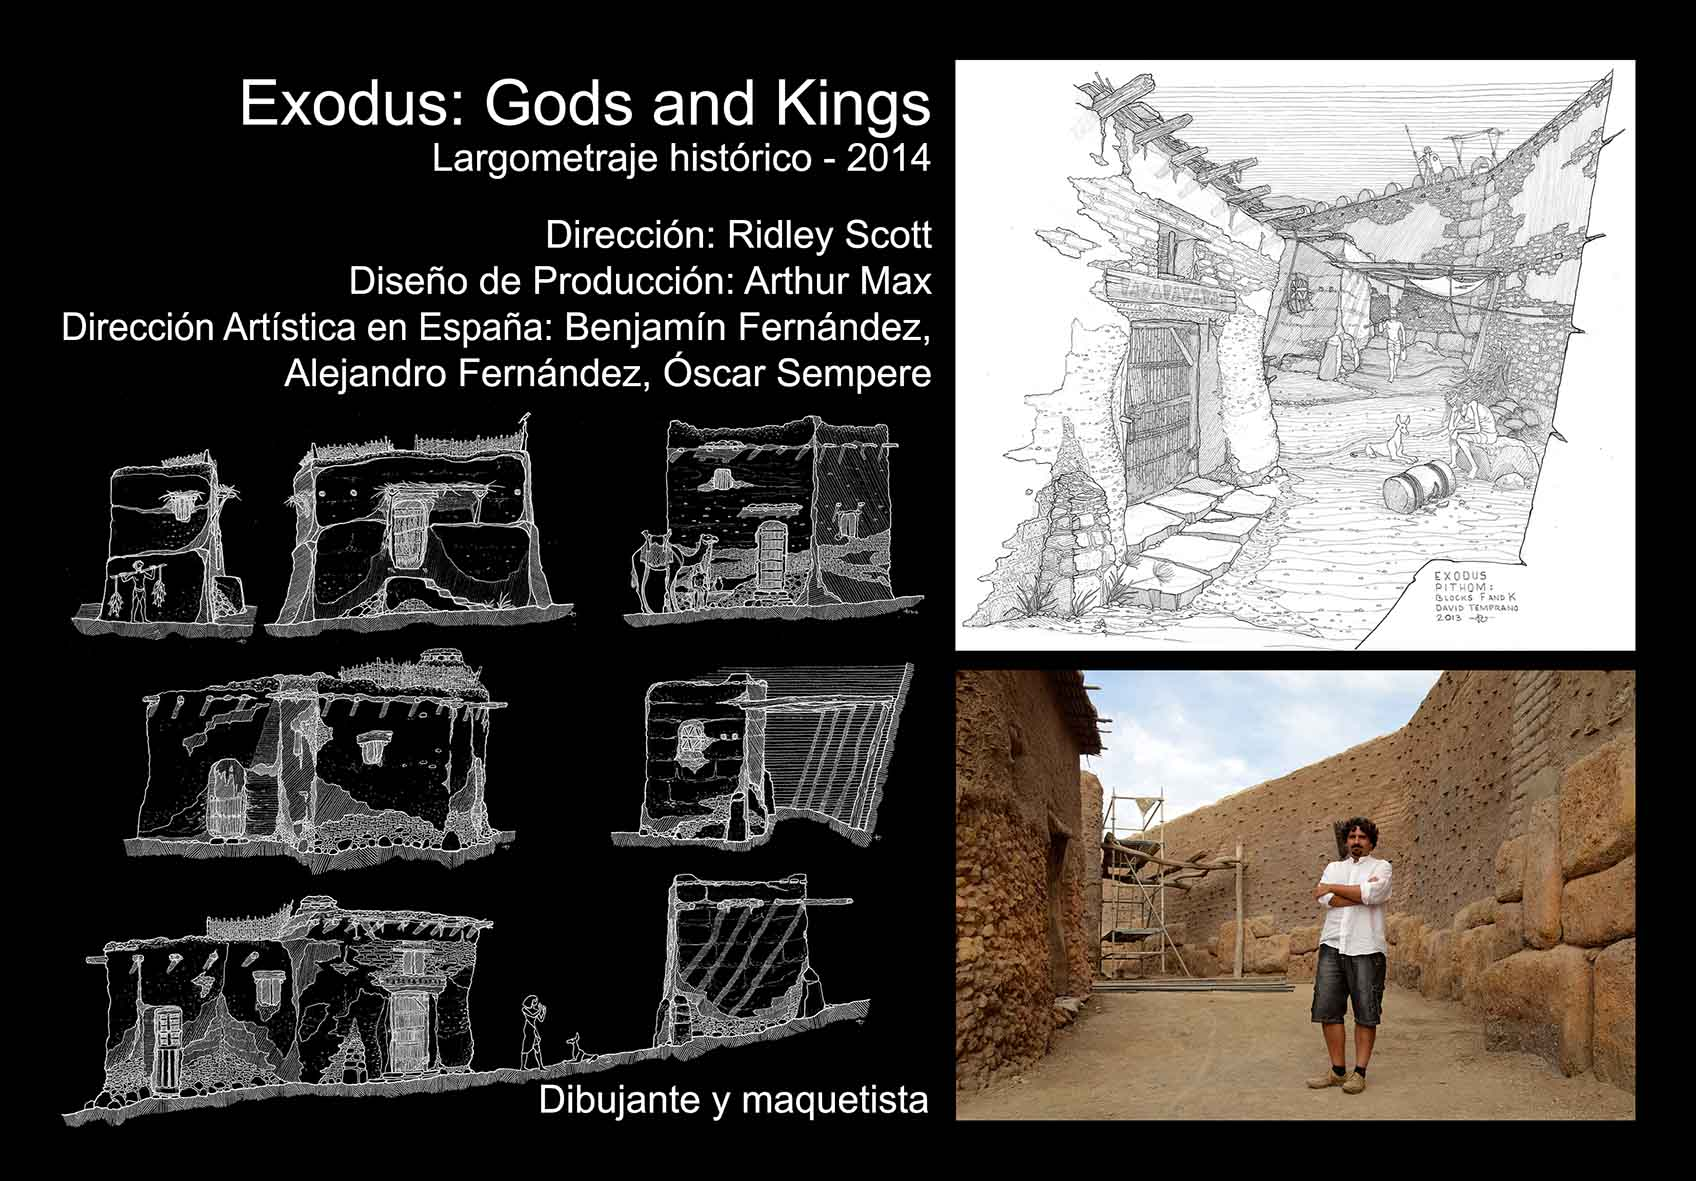 david-temprano-90-exodus-gods-and-kings-1